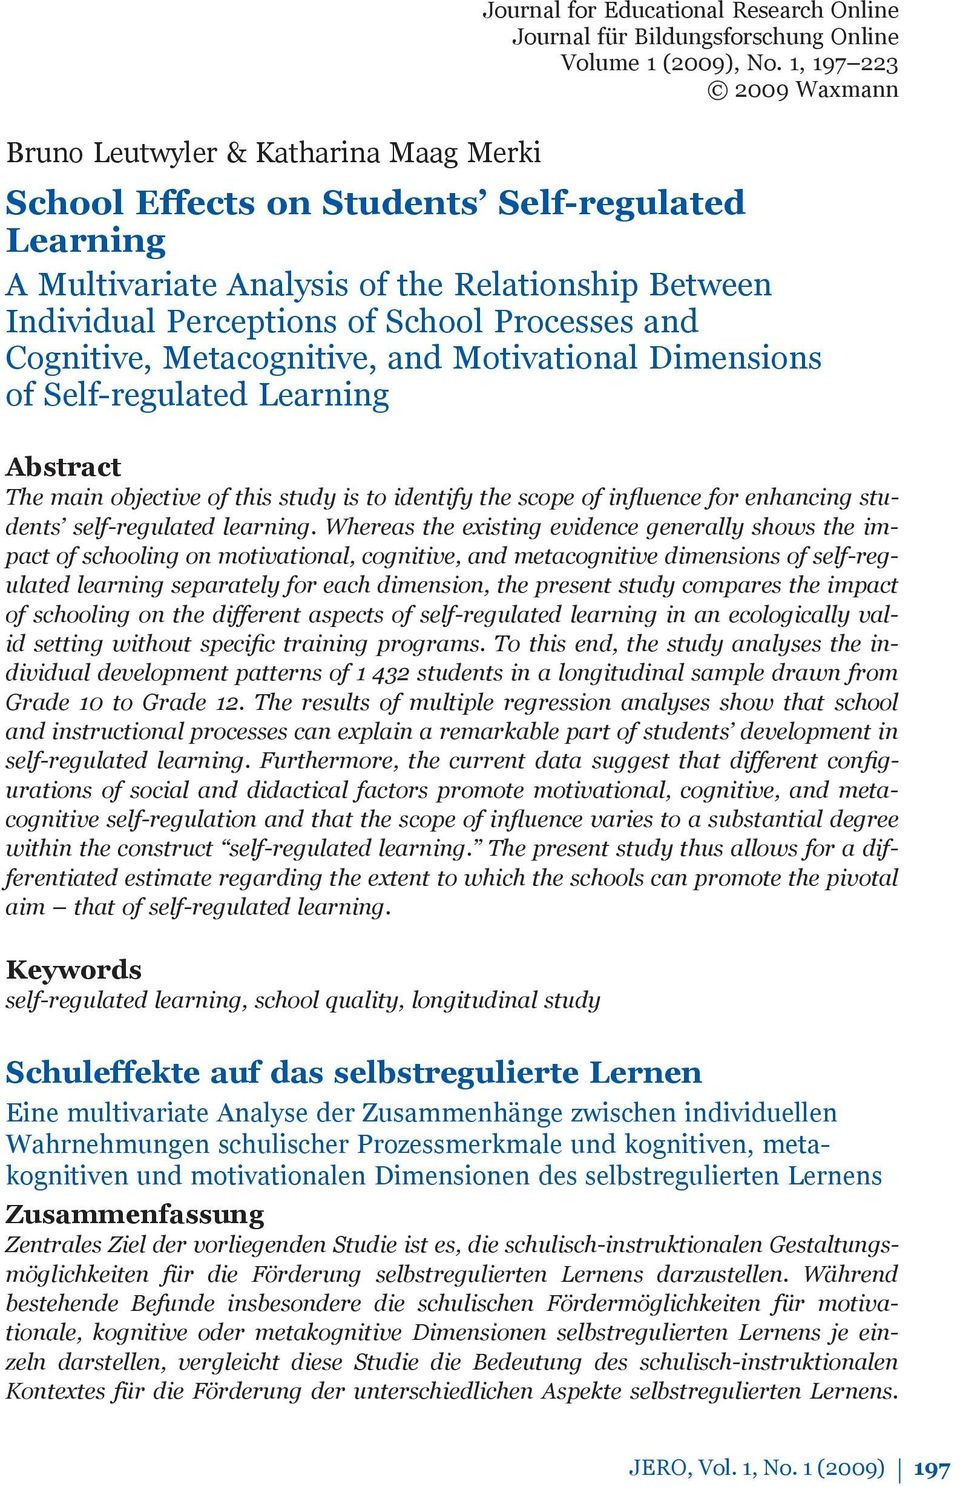 Processes and Cognitive, Metacognitive, and Motivational Dimensions of Self-regulated Learning Abstract The main objective of this study is to identify the scope of influence for enhancing students